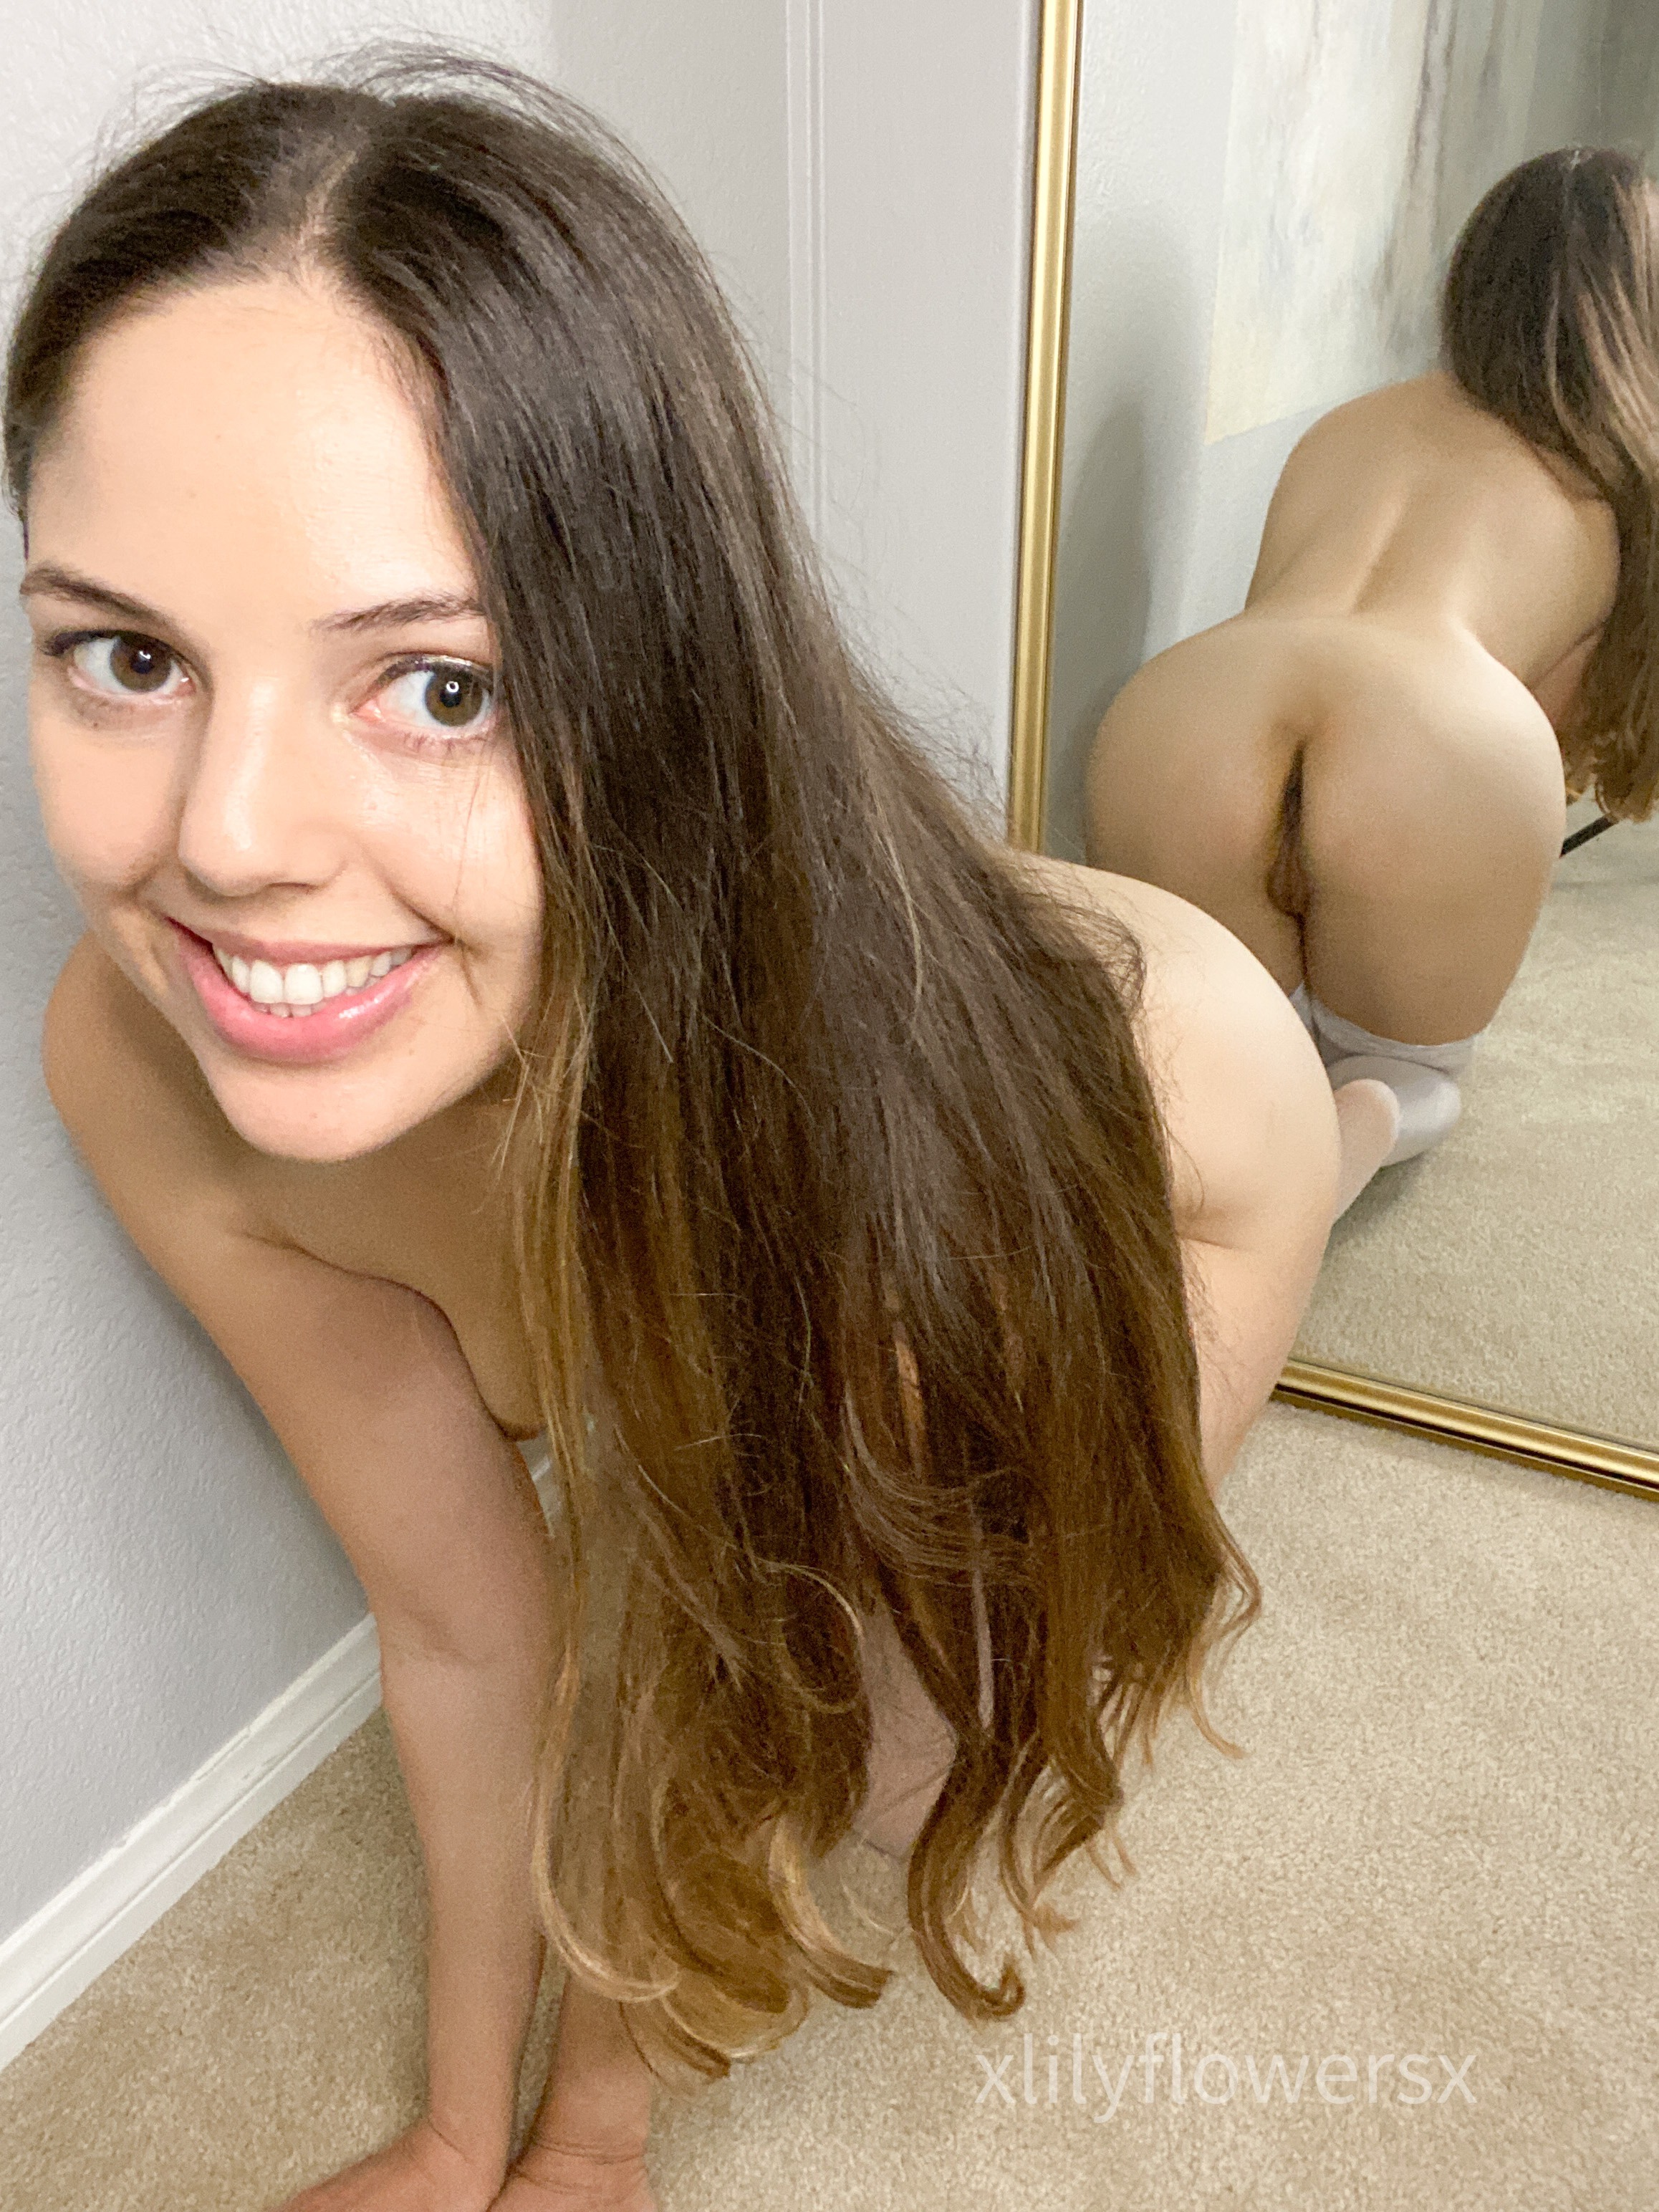 One of our petite nude pics called Can I send you nudes?